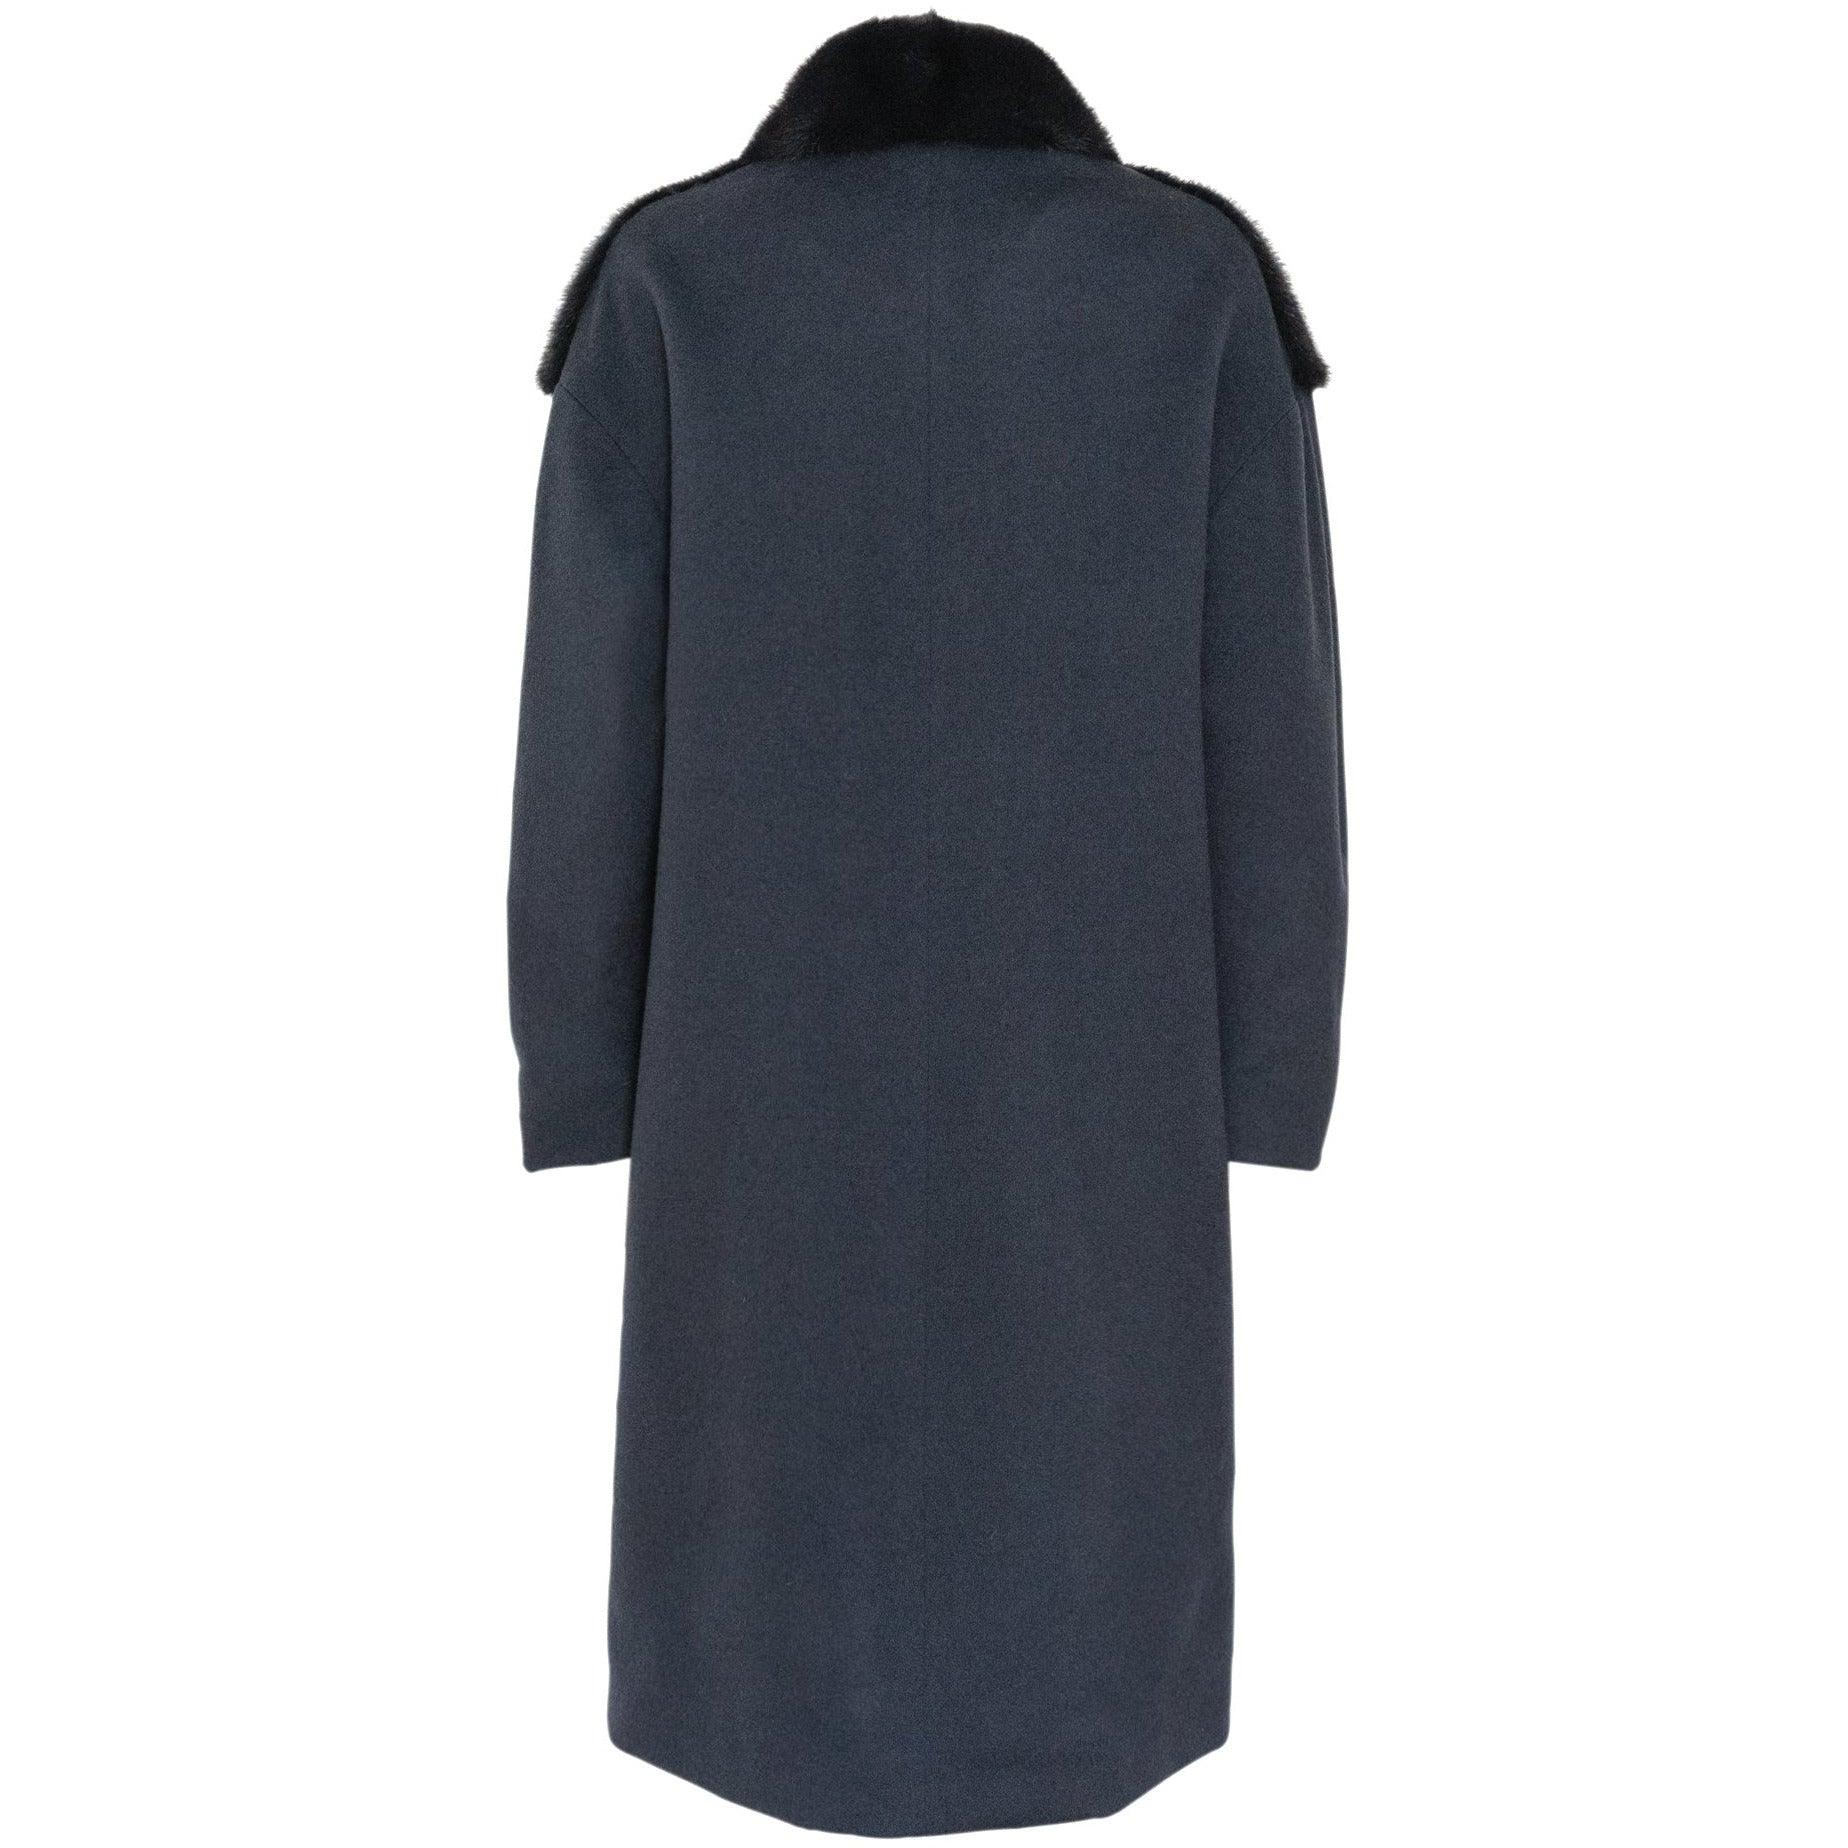 REVERSIBLE CASHMERE LONG COAT WITH MINK COLLAR